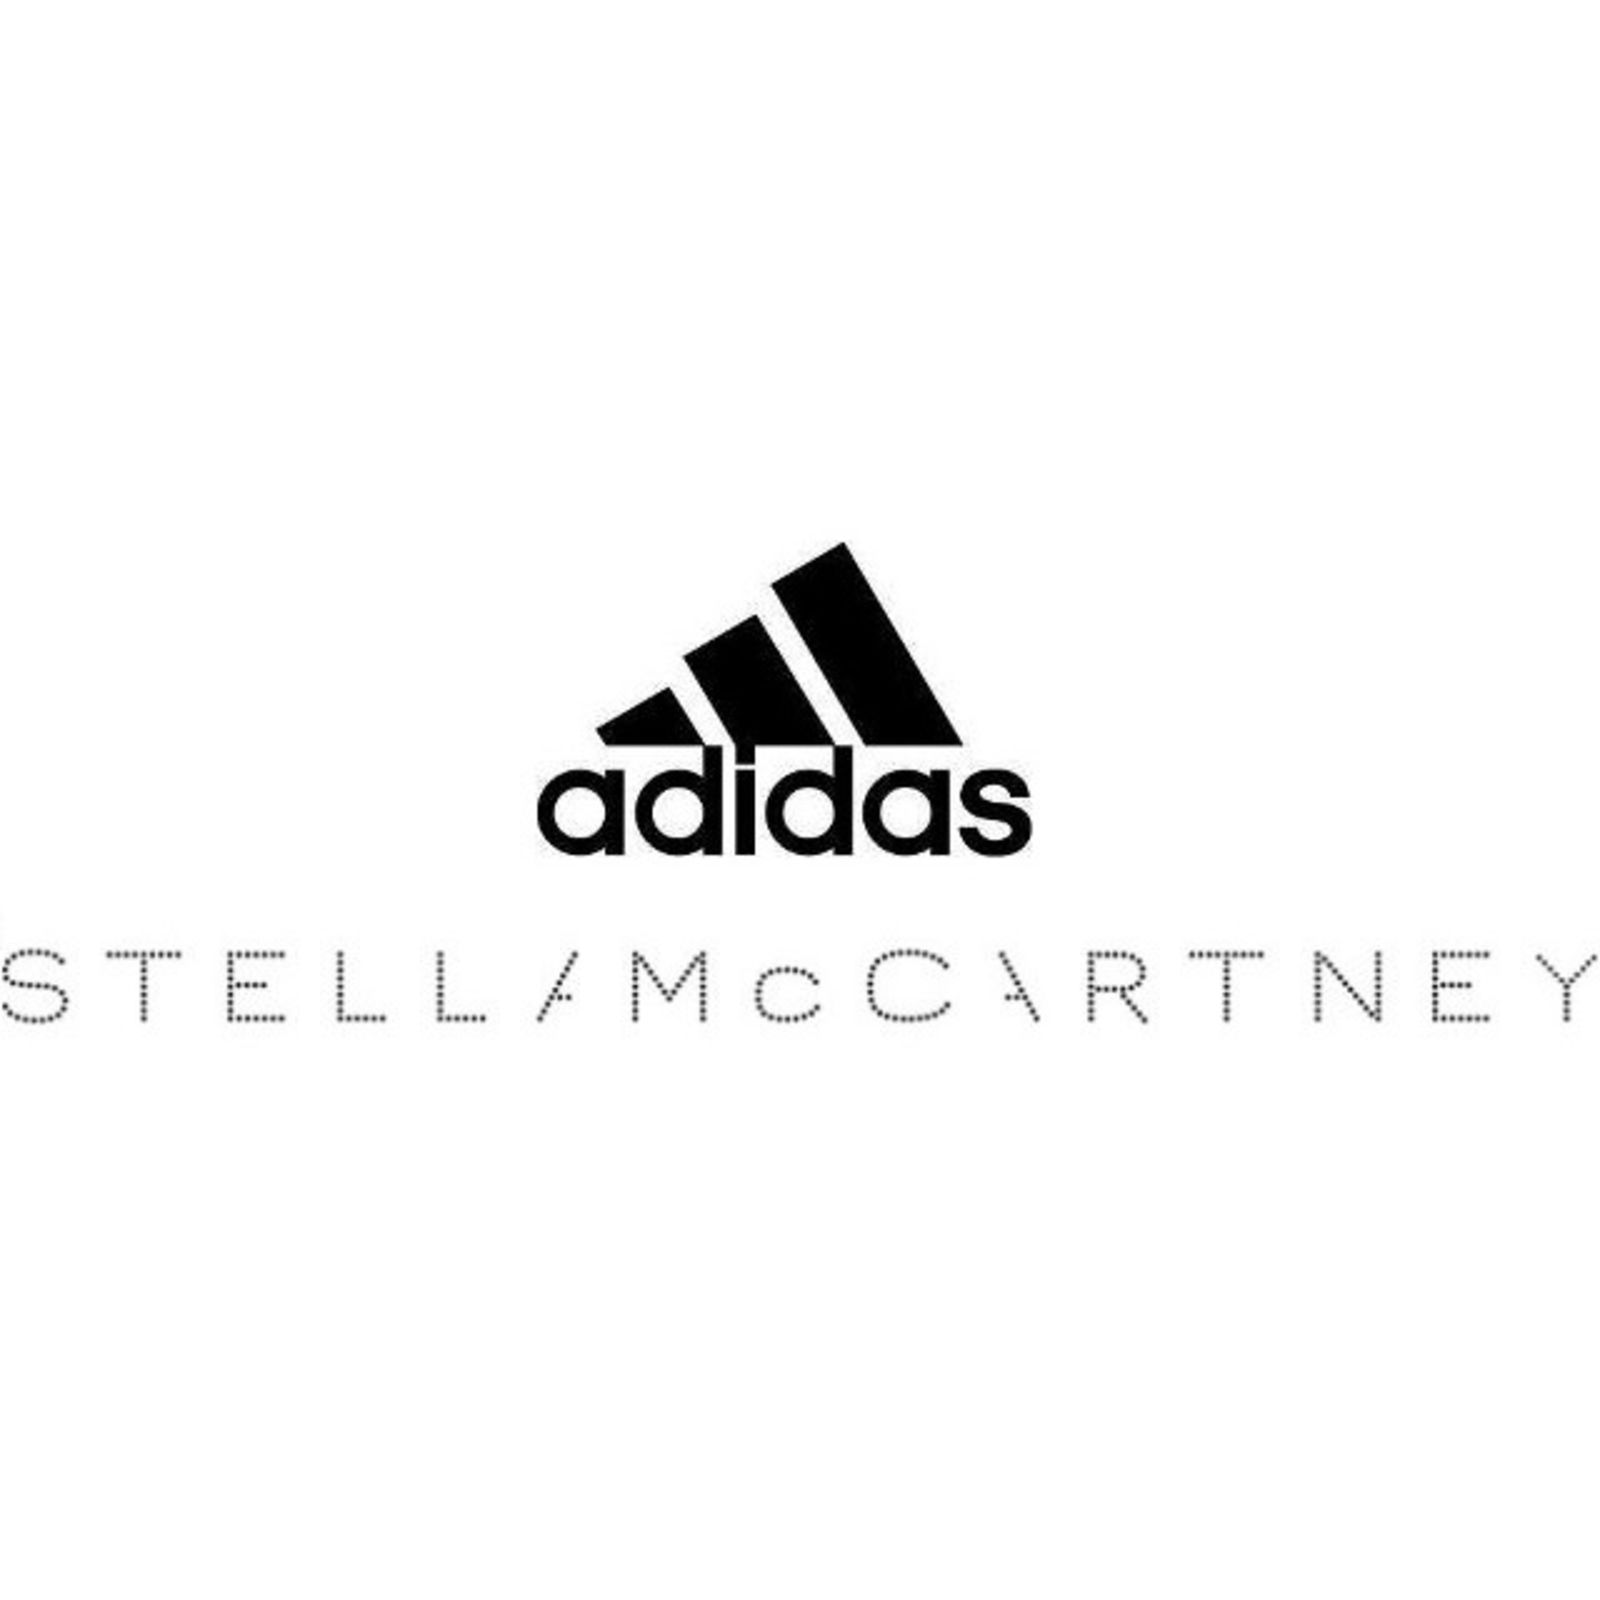 adidas x STELLA McCARTNEY (Изображение 1)